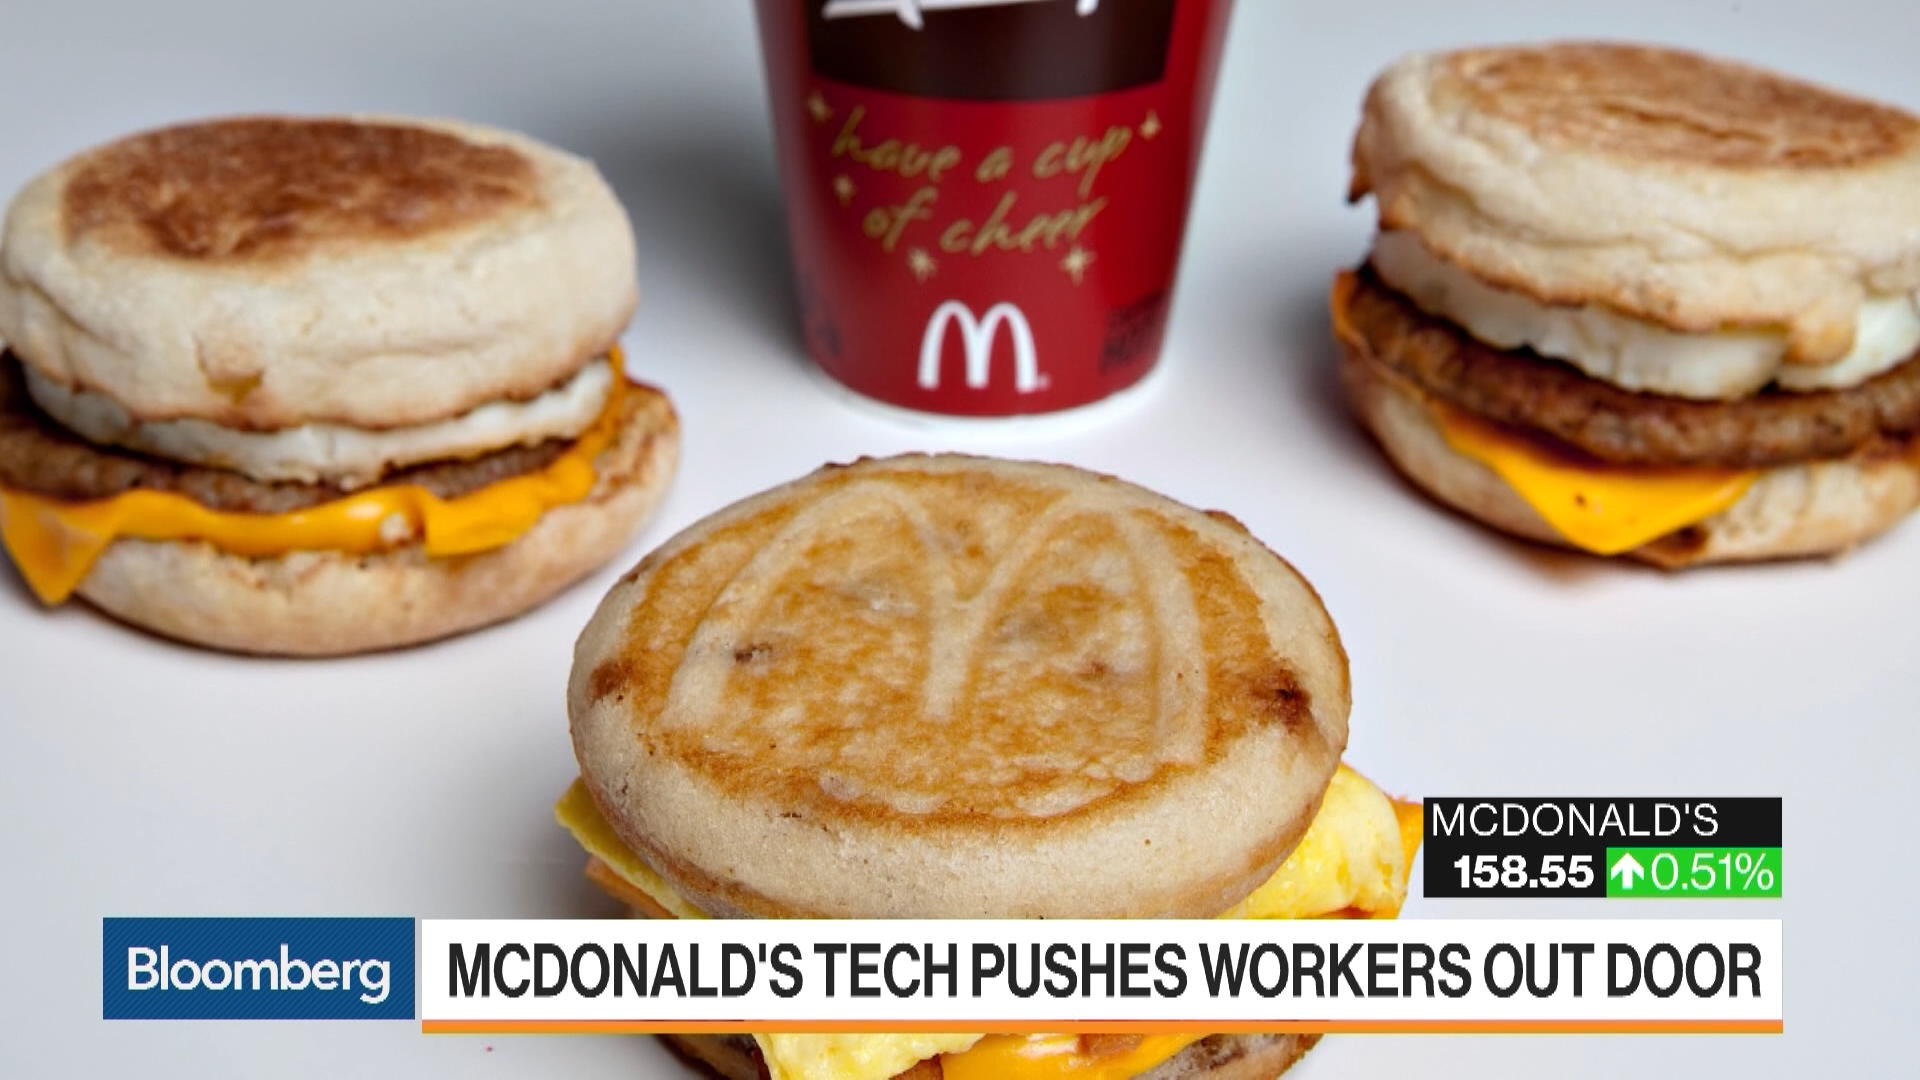 McDonald's High-Tech Makeover Is Stressing Workers Out